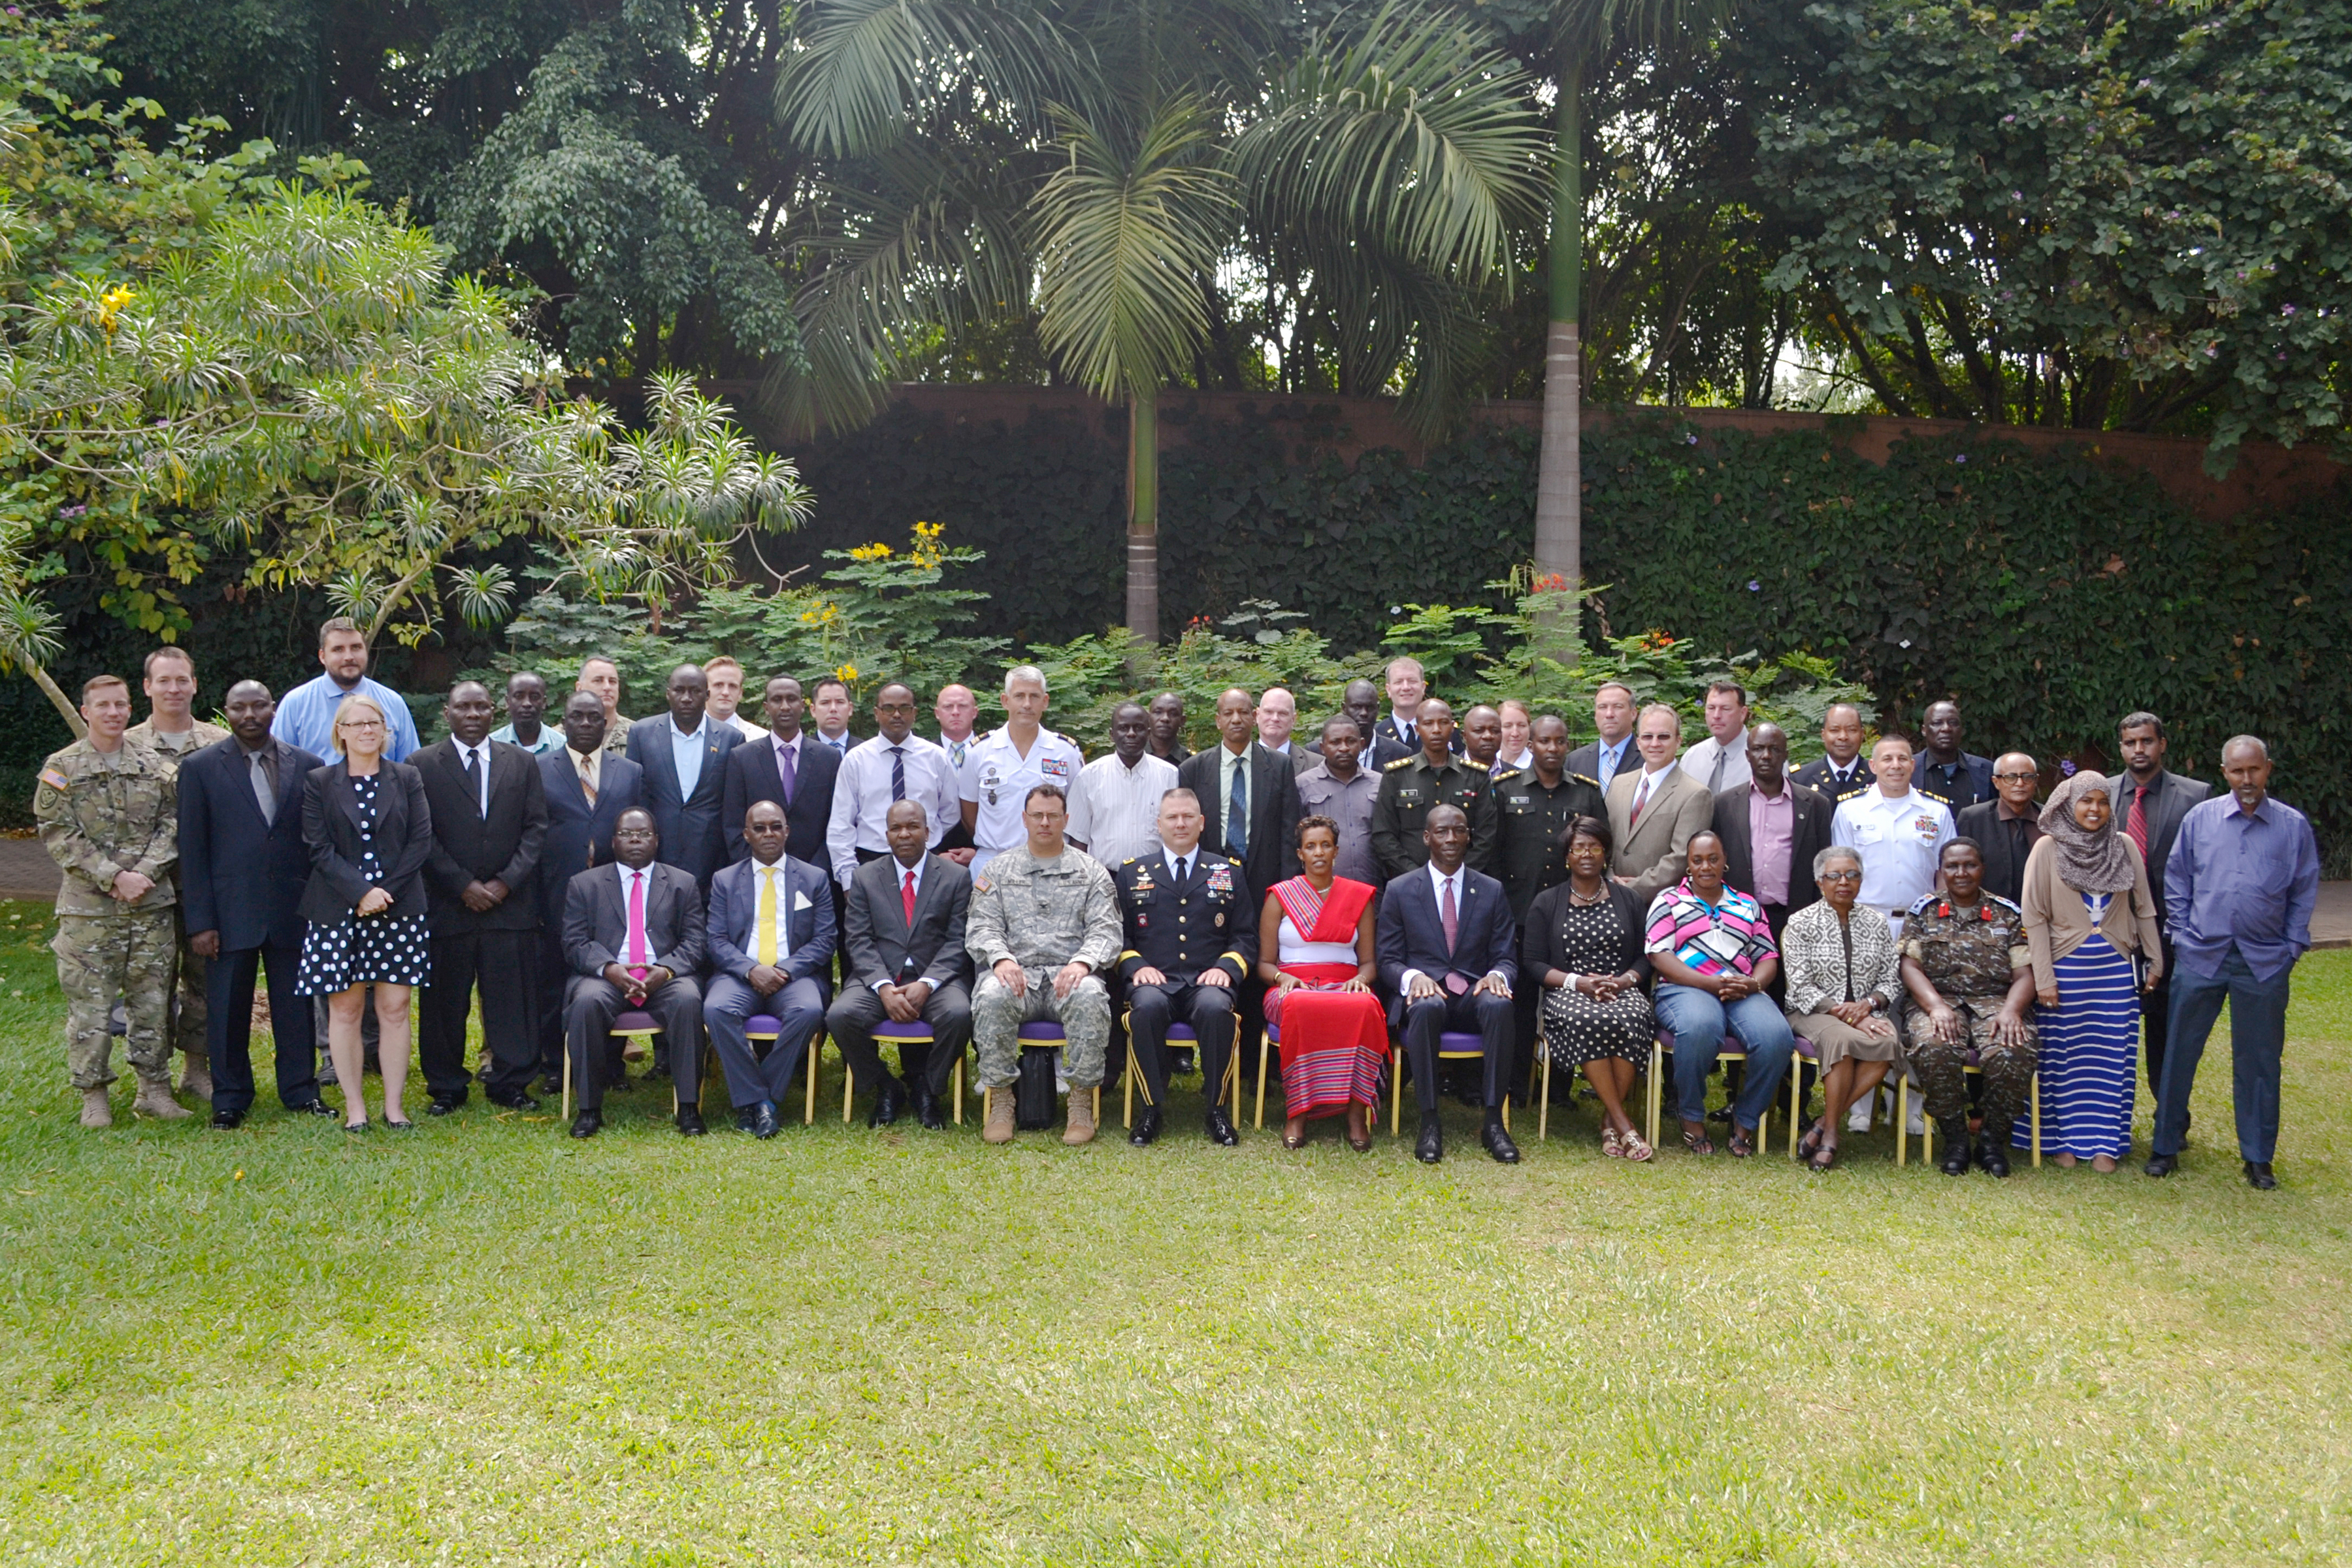 Seminar participants pose for a group photo during the Africa Center for Strategic Studies Managing Security Resources in Africa Seminar, Kampala, Uganda. (CJTF-HOA photo, Released)